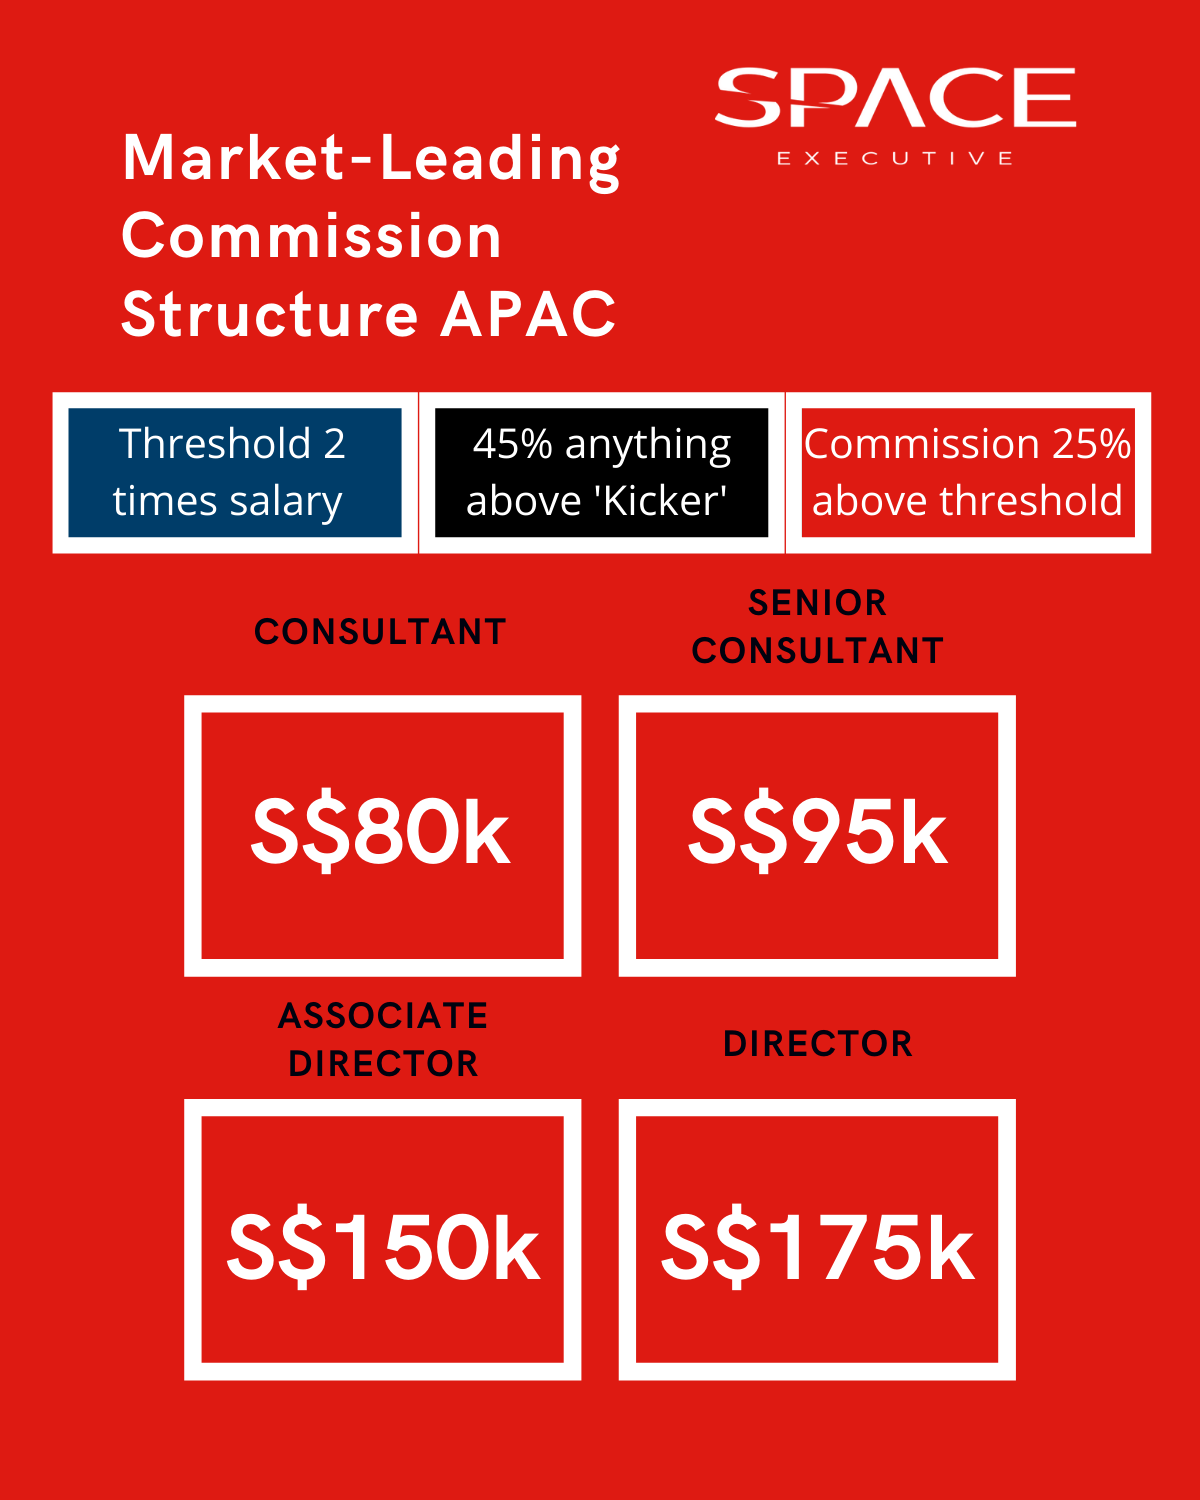 market-leading commission structure APAC